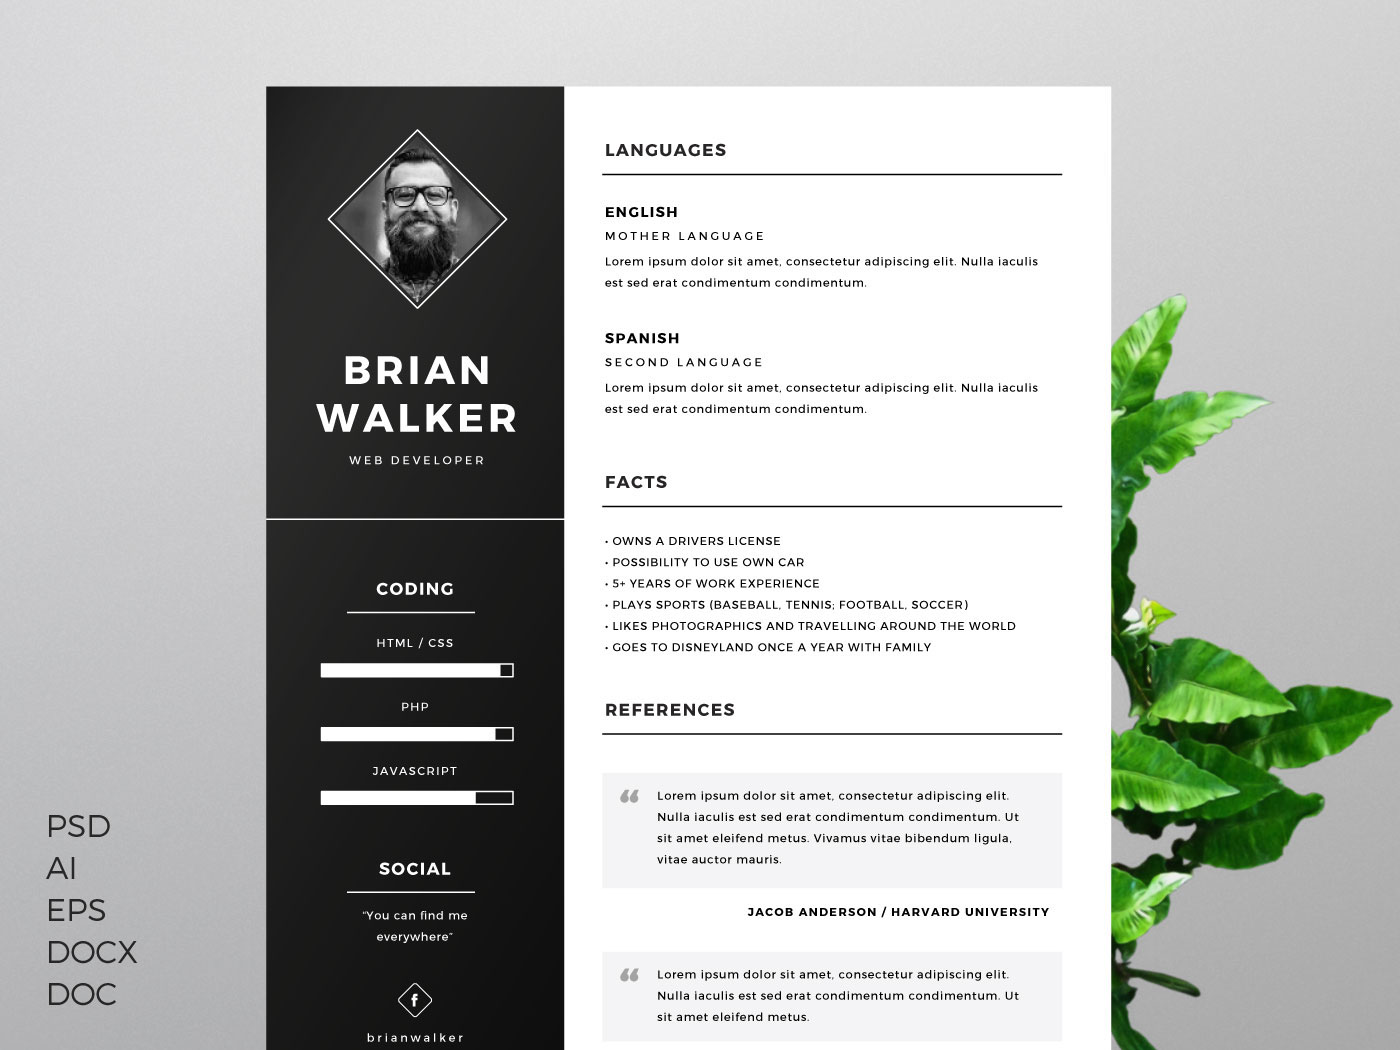 free resume template for word photoshop illustrator on behance templates objective yahoo Resume Illustrator Resume Templates